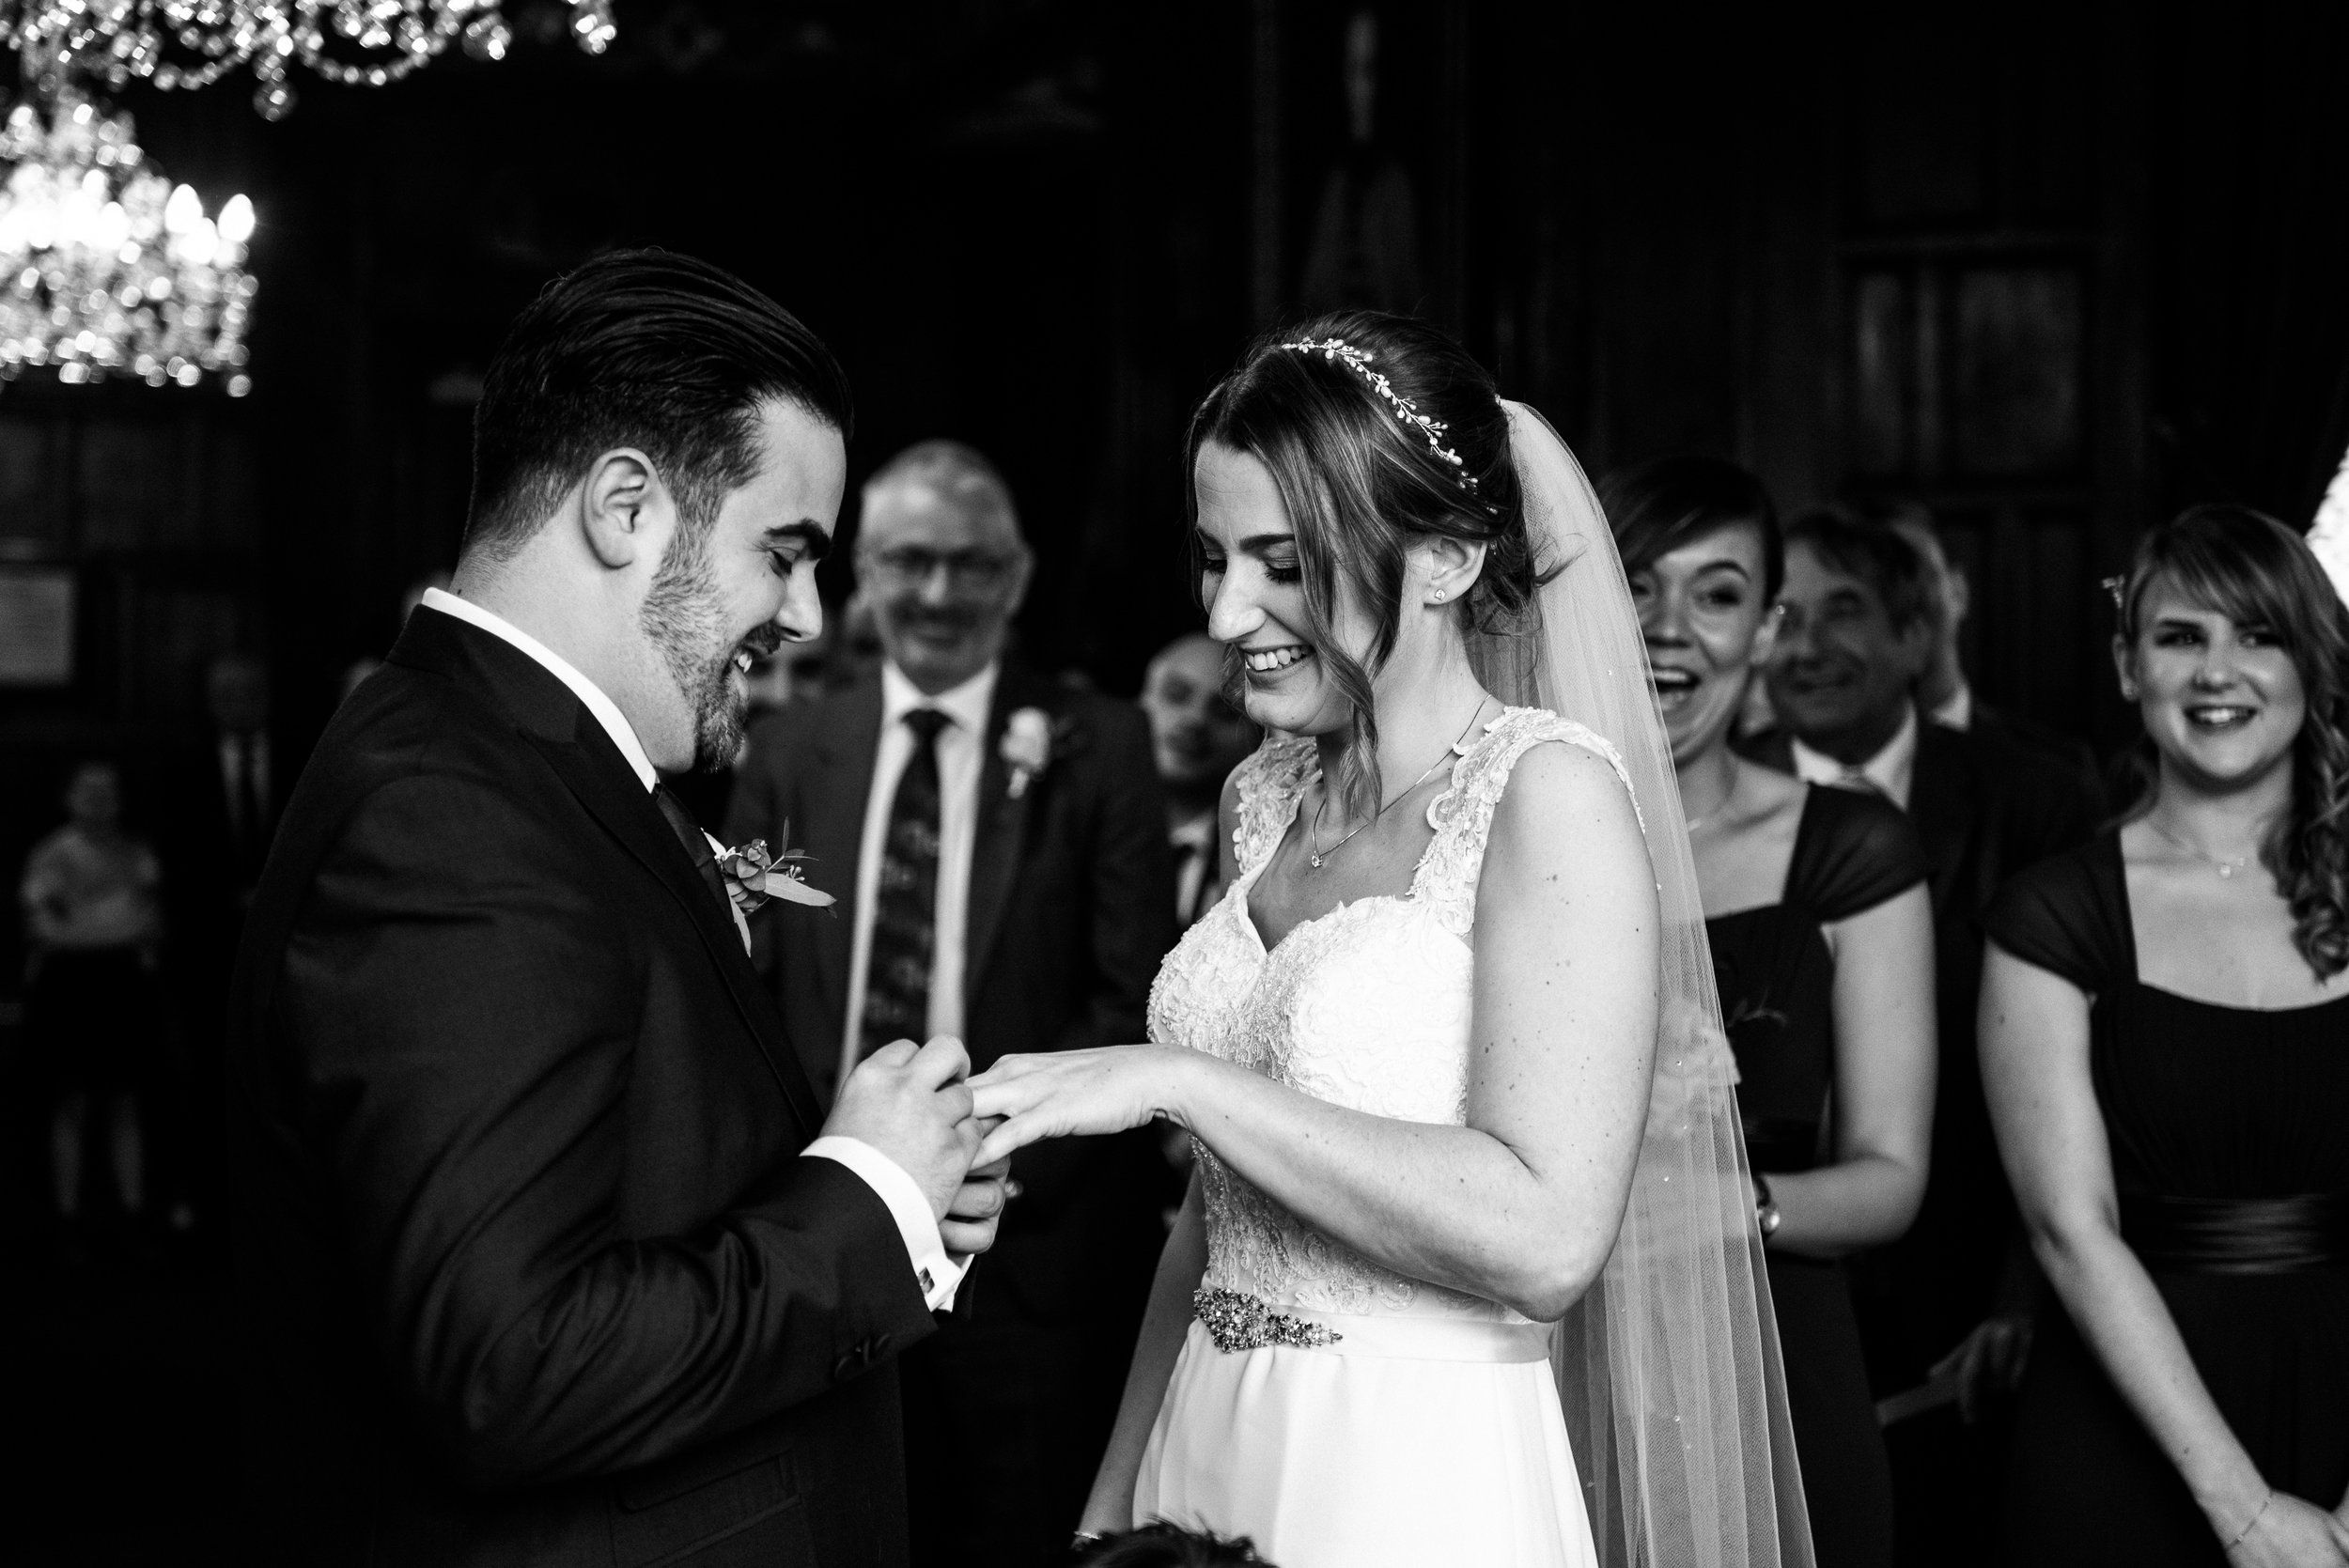 Birmingham Documentary Wedding Photography at New Hall, Sutton Coldfield Turkish Red Candid Reportage - Jenny Harper-31.jpg